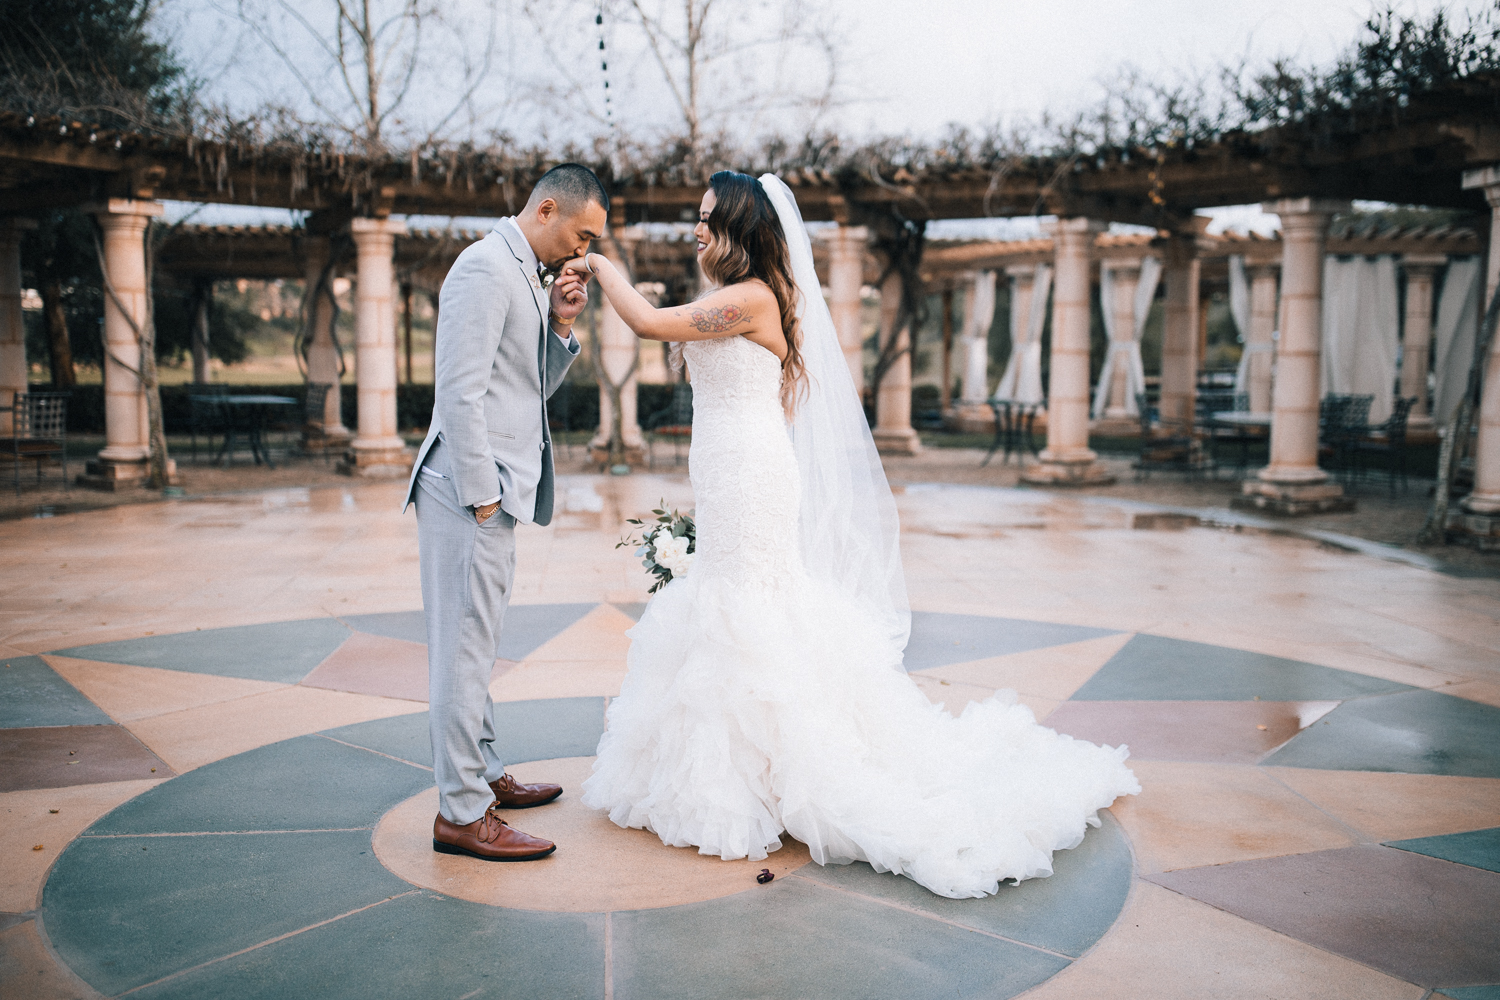 2019_01_ 202019.01.20 Santiago Wedding Blog Photos Edited For Web 0072.jpg